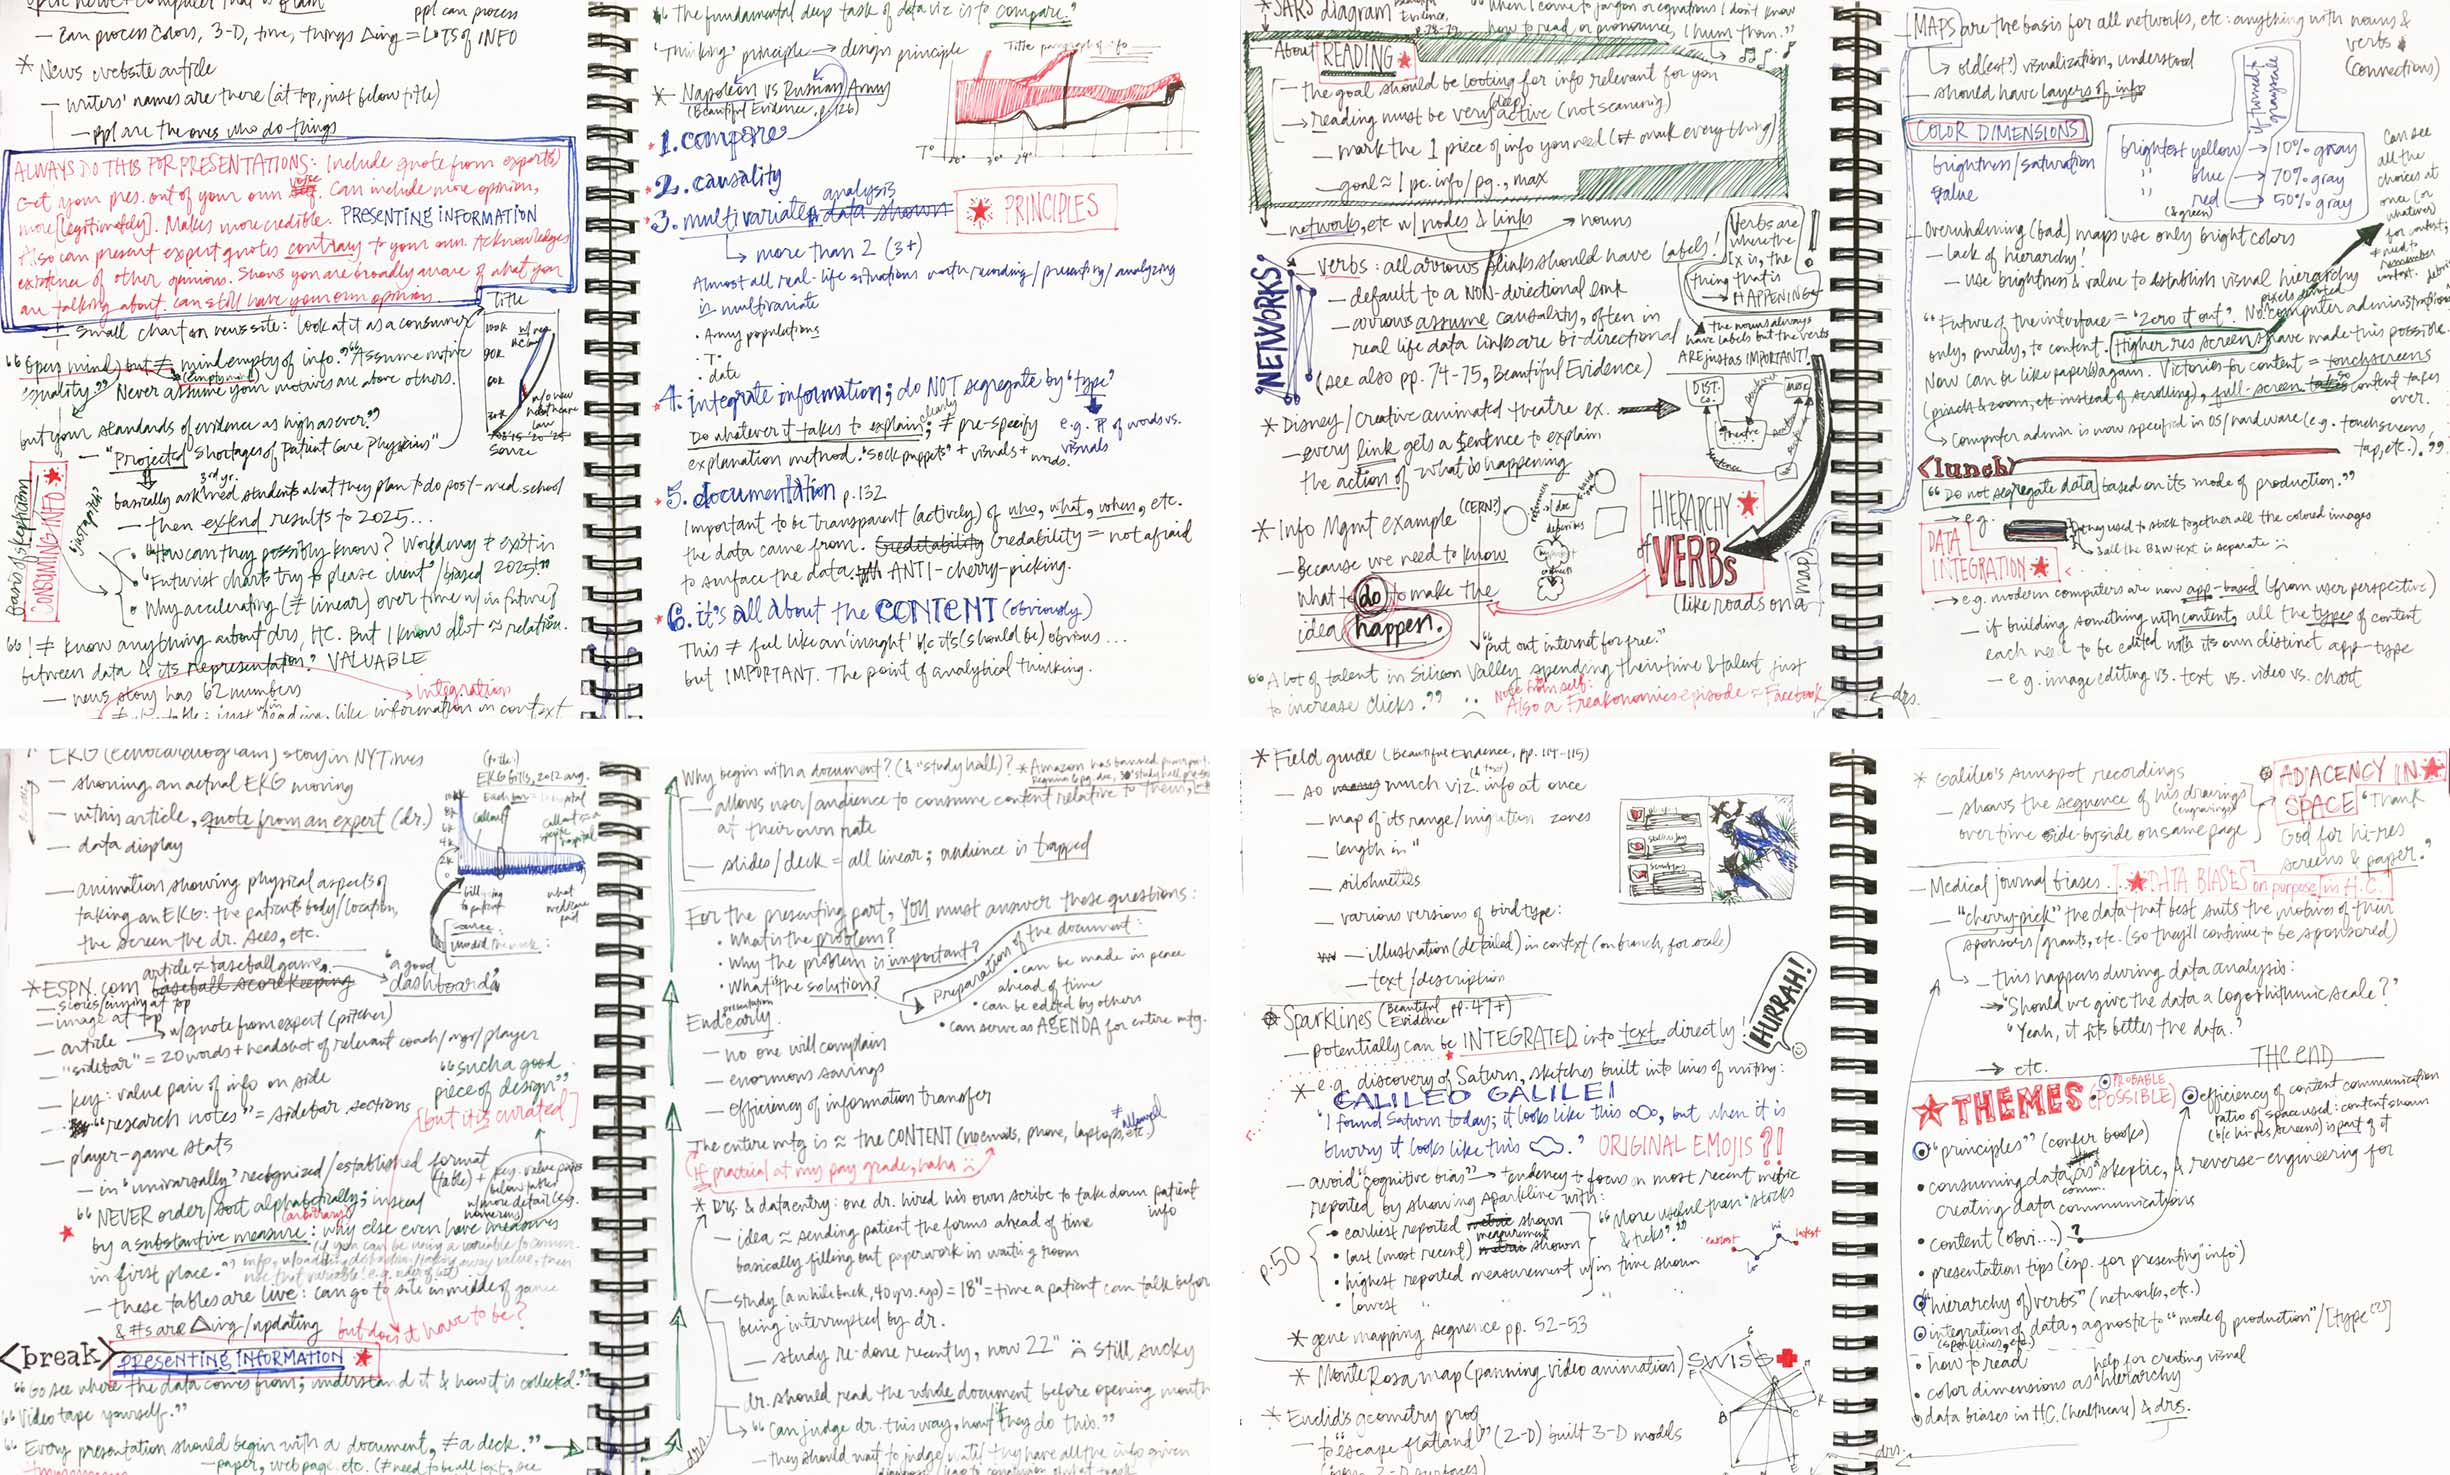 Four full-page notebook spreads are covered in black, blue, green, and red ink.